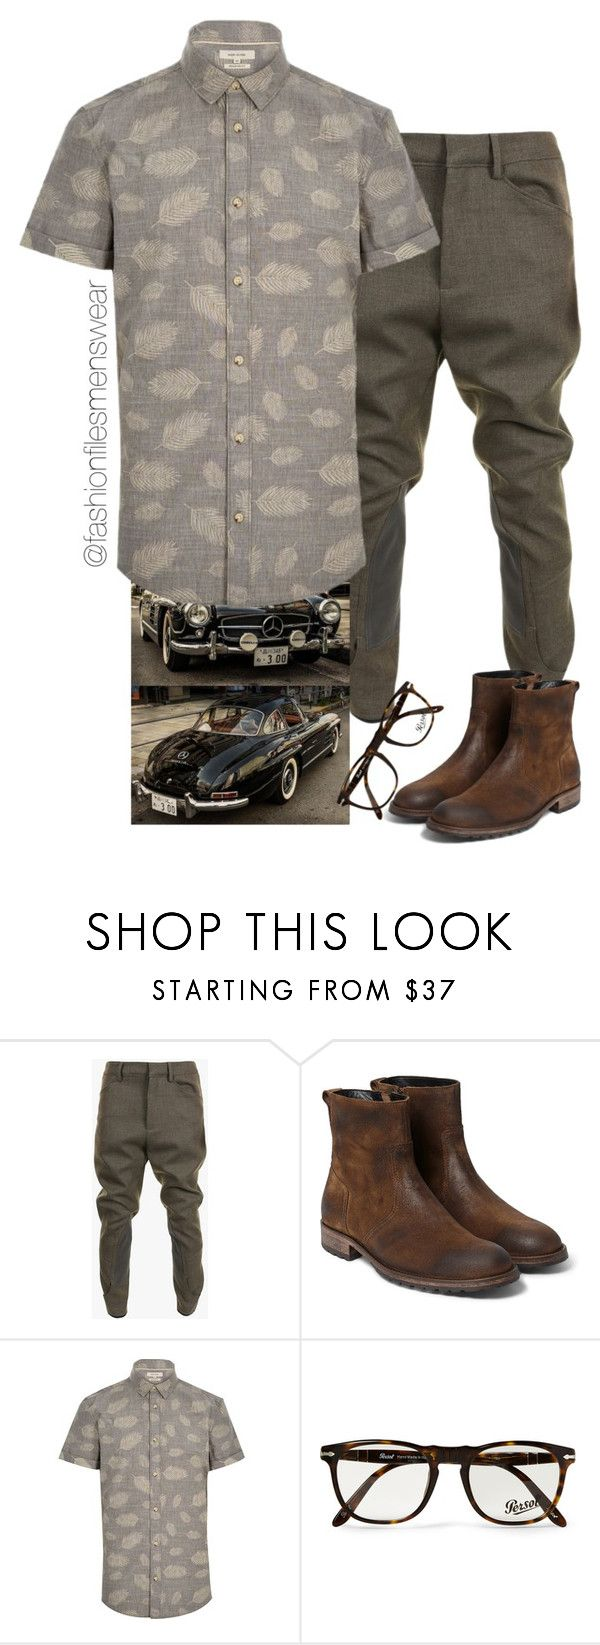 """""""Hipster Dude"""" by highfashionfiles ❤ liked on Polyvore featuring Balmain, Belstaff, River Island and Persol"""